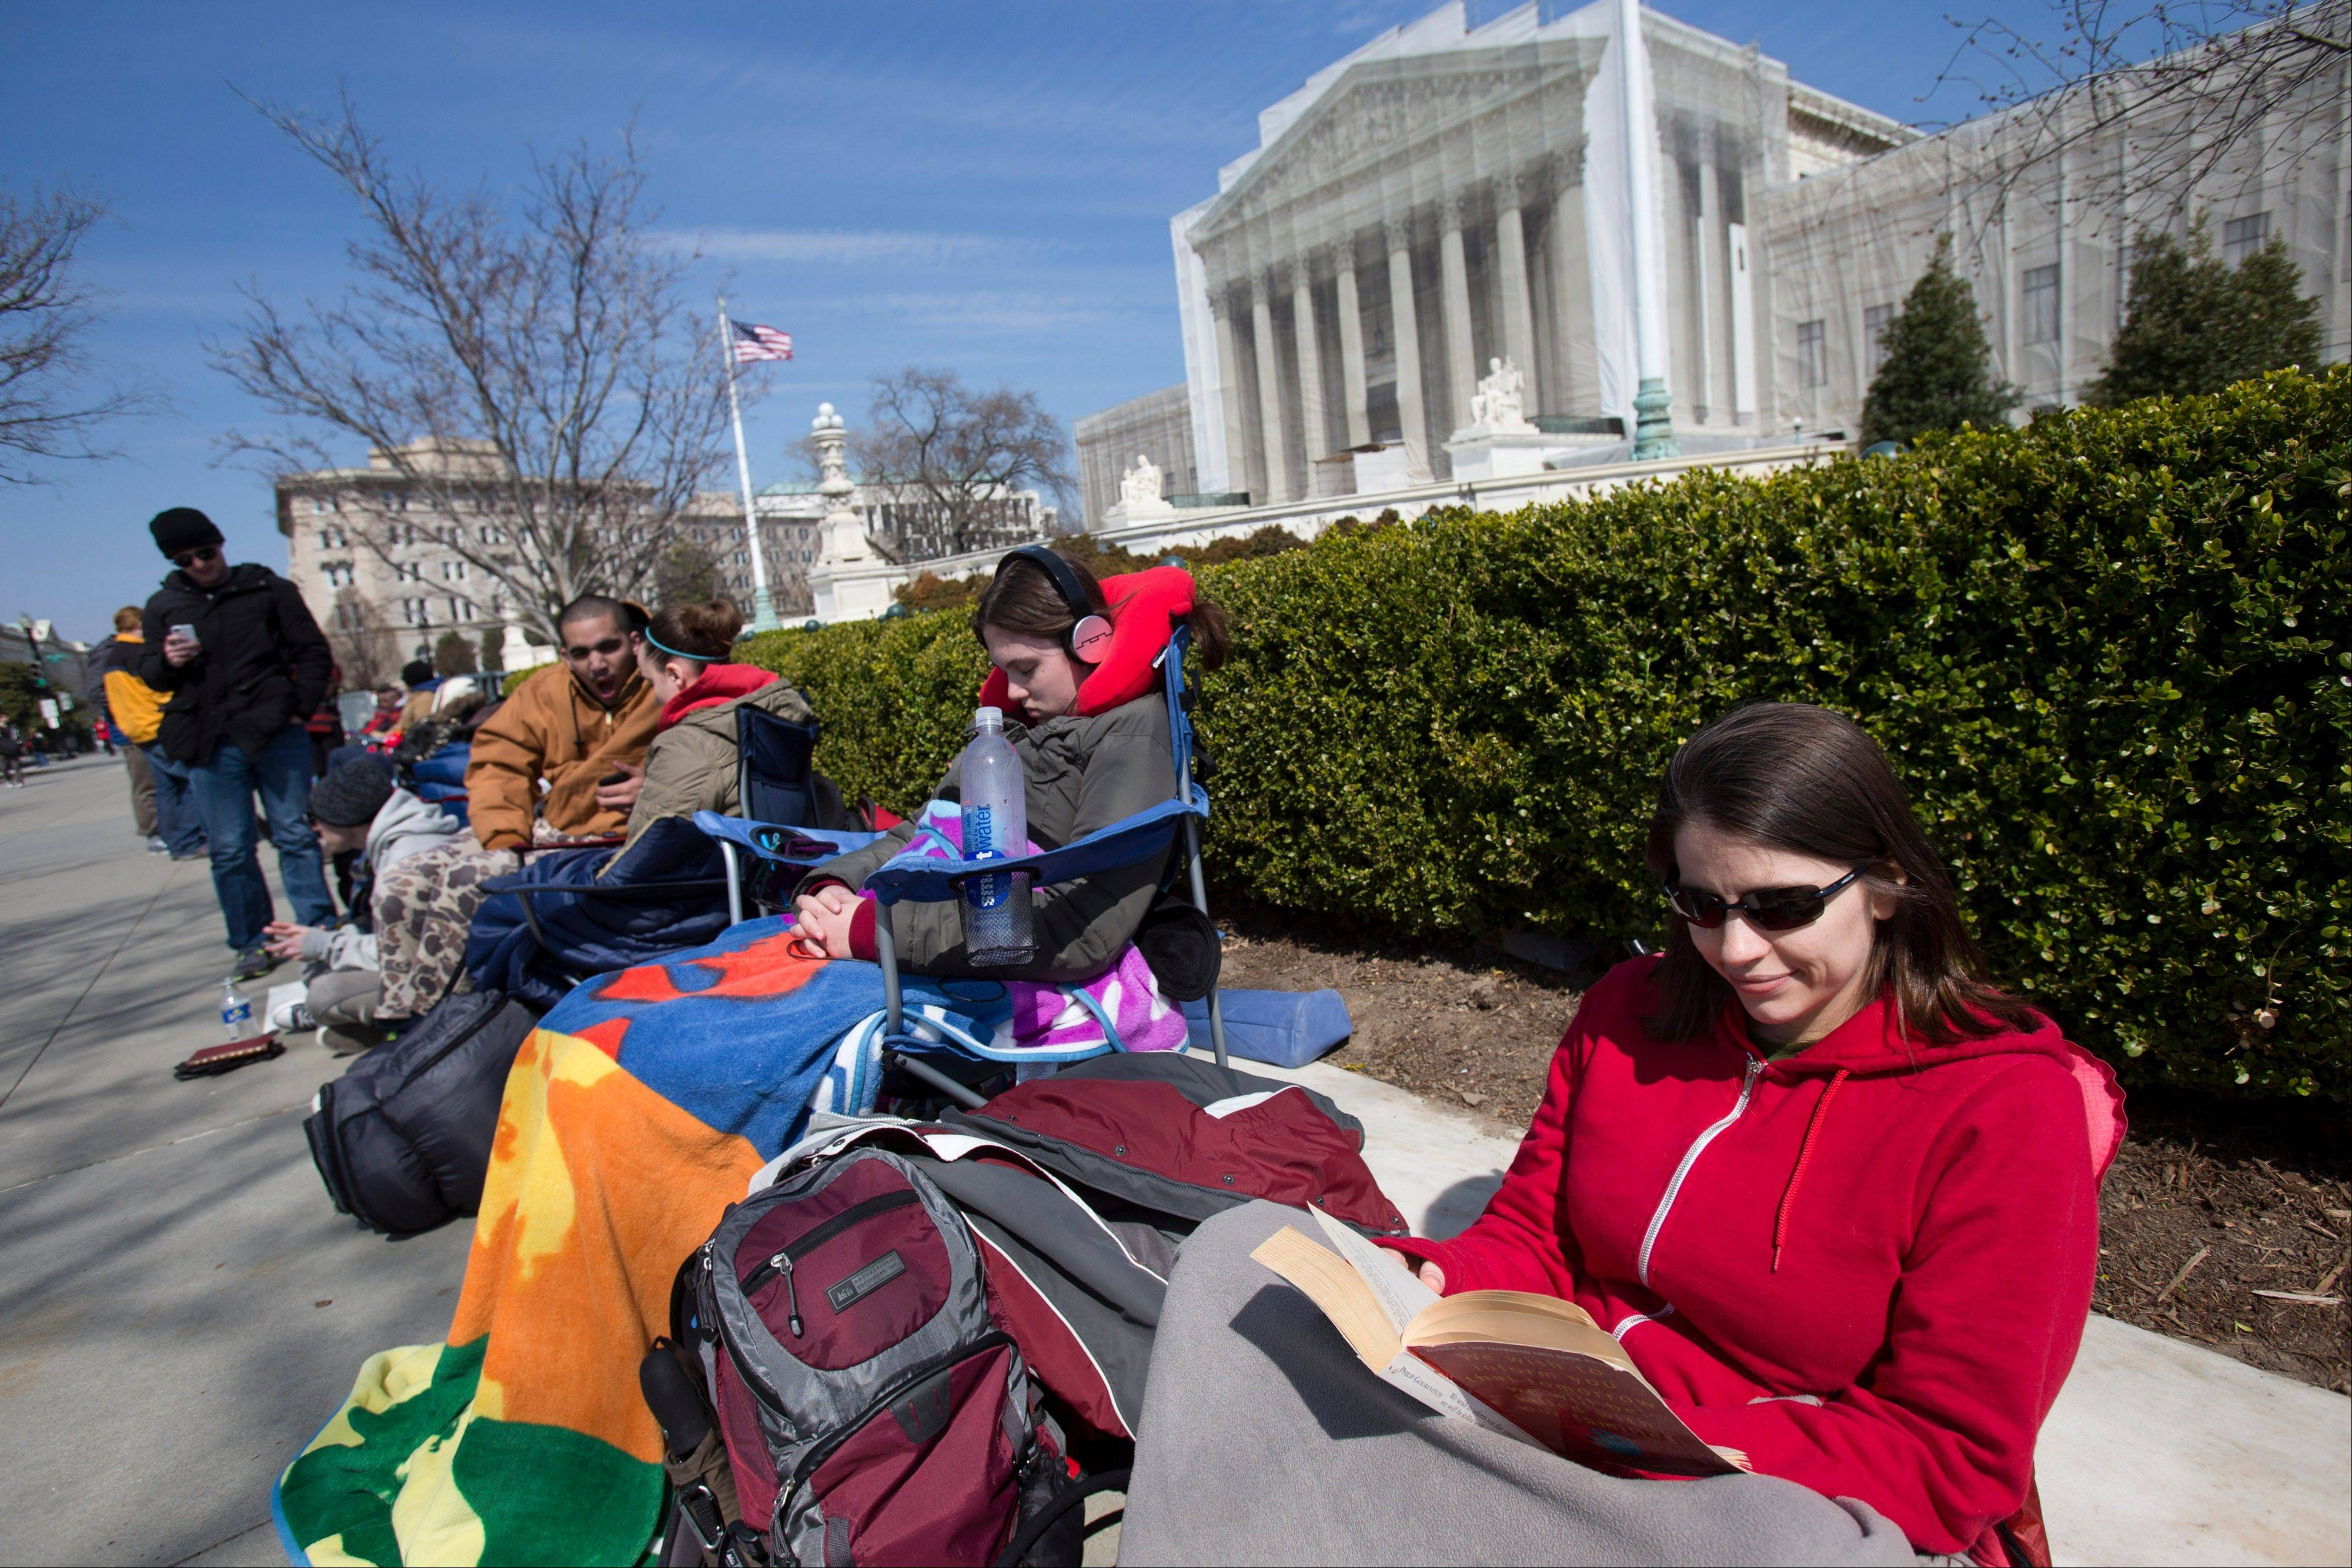 Jessica Skrebes of Washington reads Saturday while waiting in line with others outside of the U.S. Supreme Court in Washington in anticipation of Tuesday's Supreme Court hearing on California's Proposition 8 ban on same-sex marriage, and Wednesday's Supreme Court hearing on the federal Defense of Marriage Act.